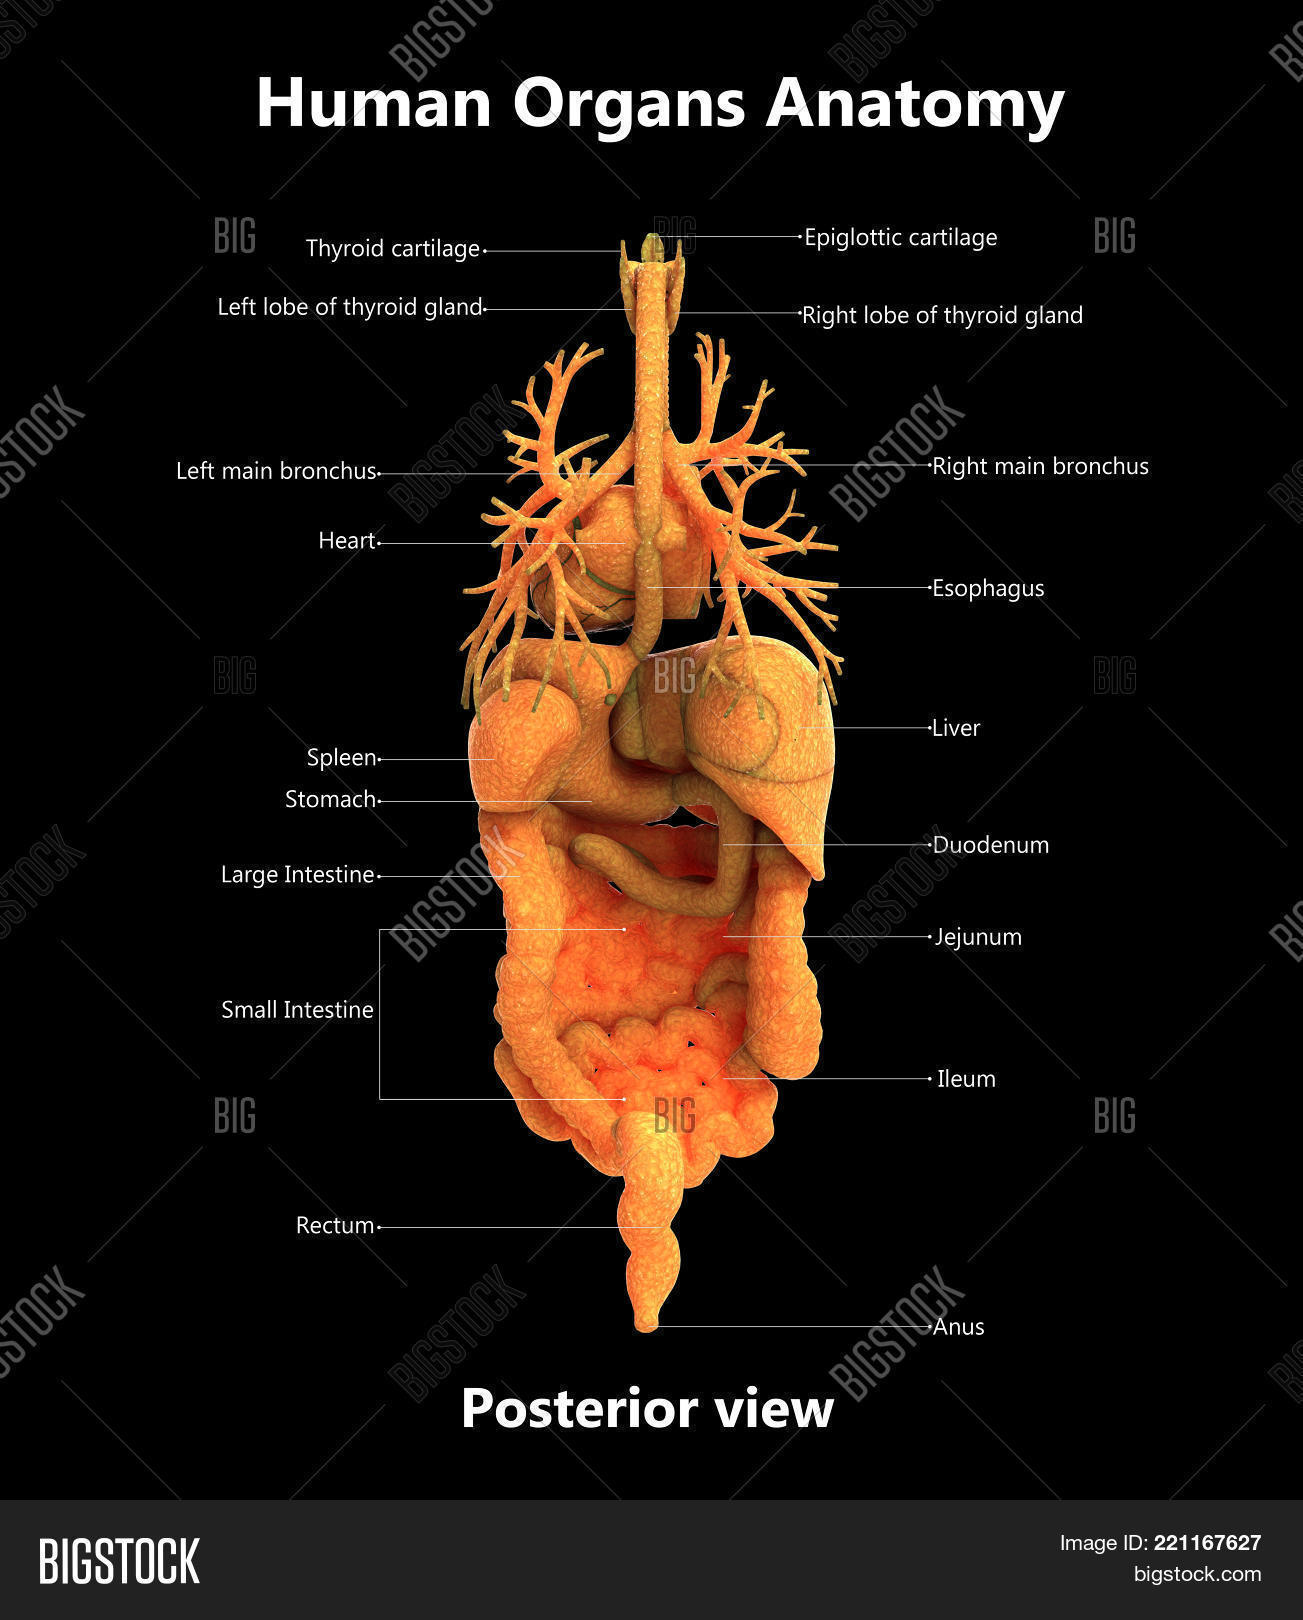 3d Illustration Human Image Photo Free Trial Bigstock